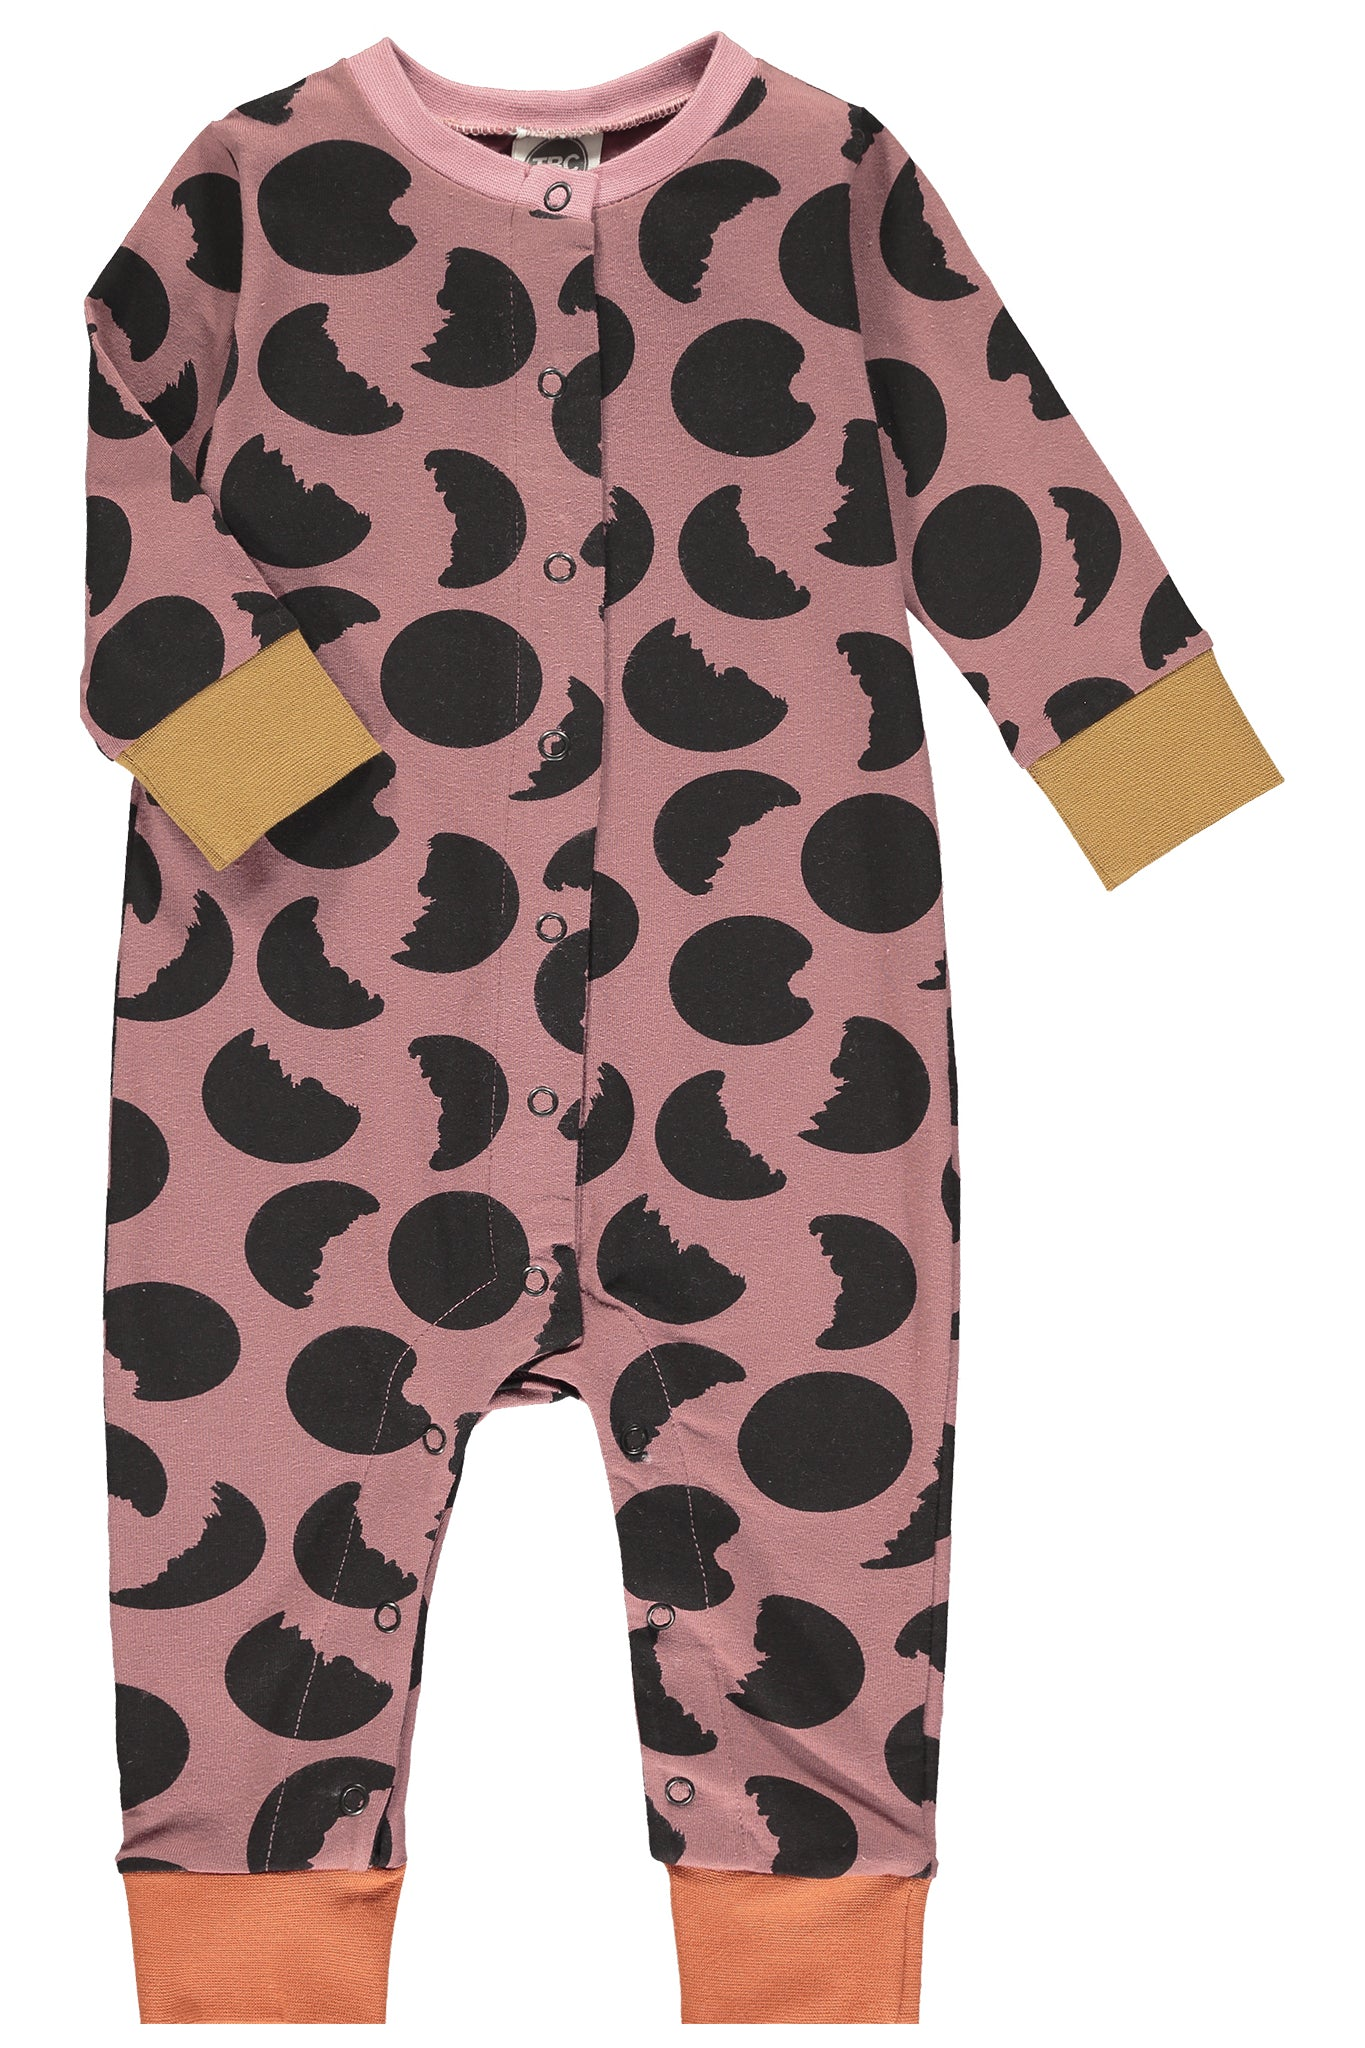 BUTTON DOWN FRONT SLEEPSUIT - MOON PRINT- APPLE BUTTER